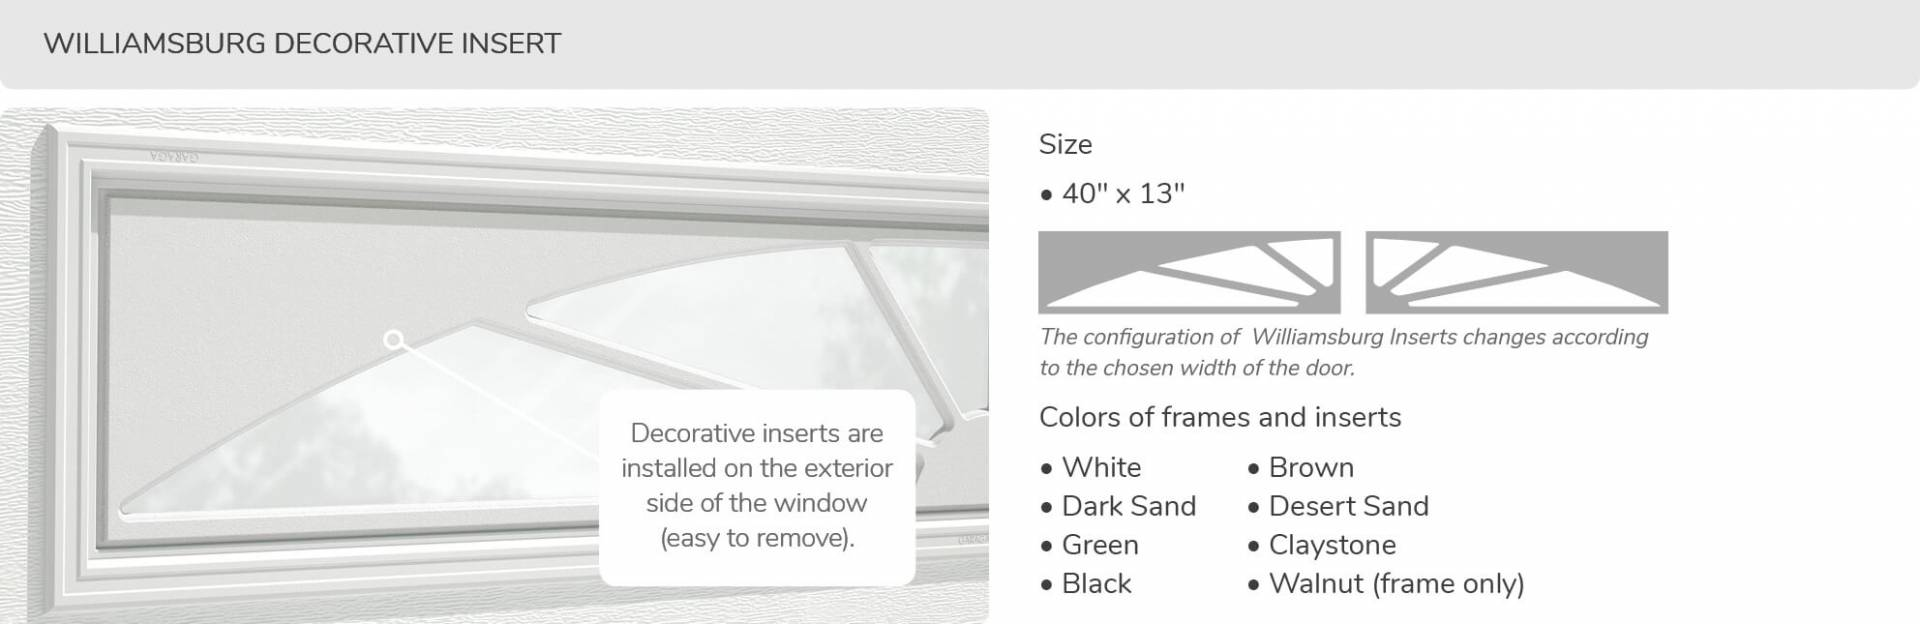 Williamsburg Decorative Insert, 40' x 13', available for door R-16